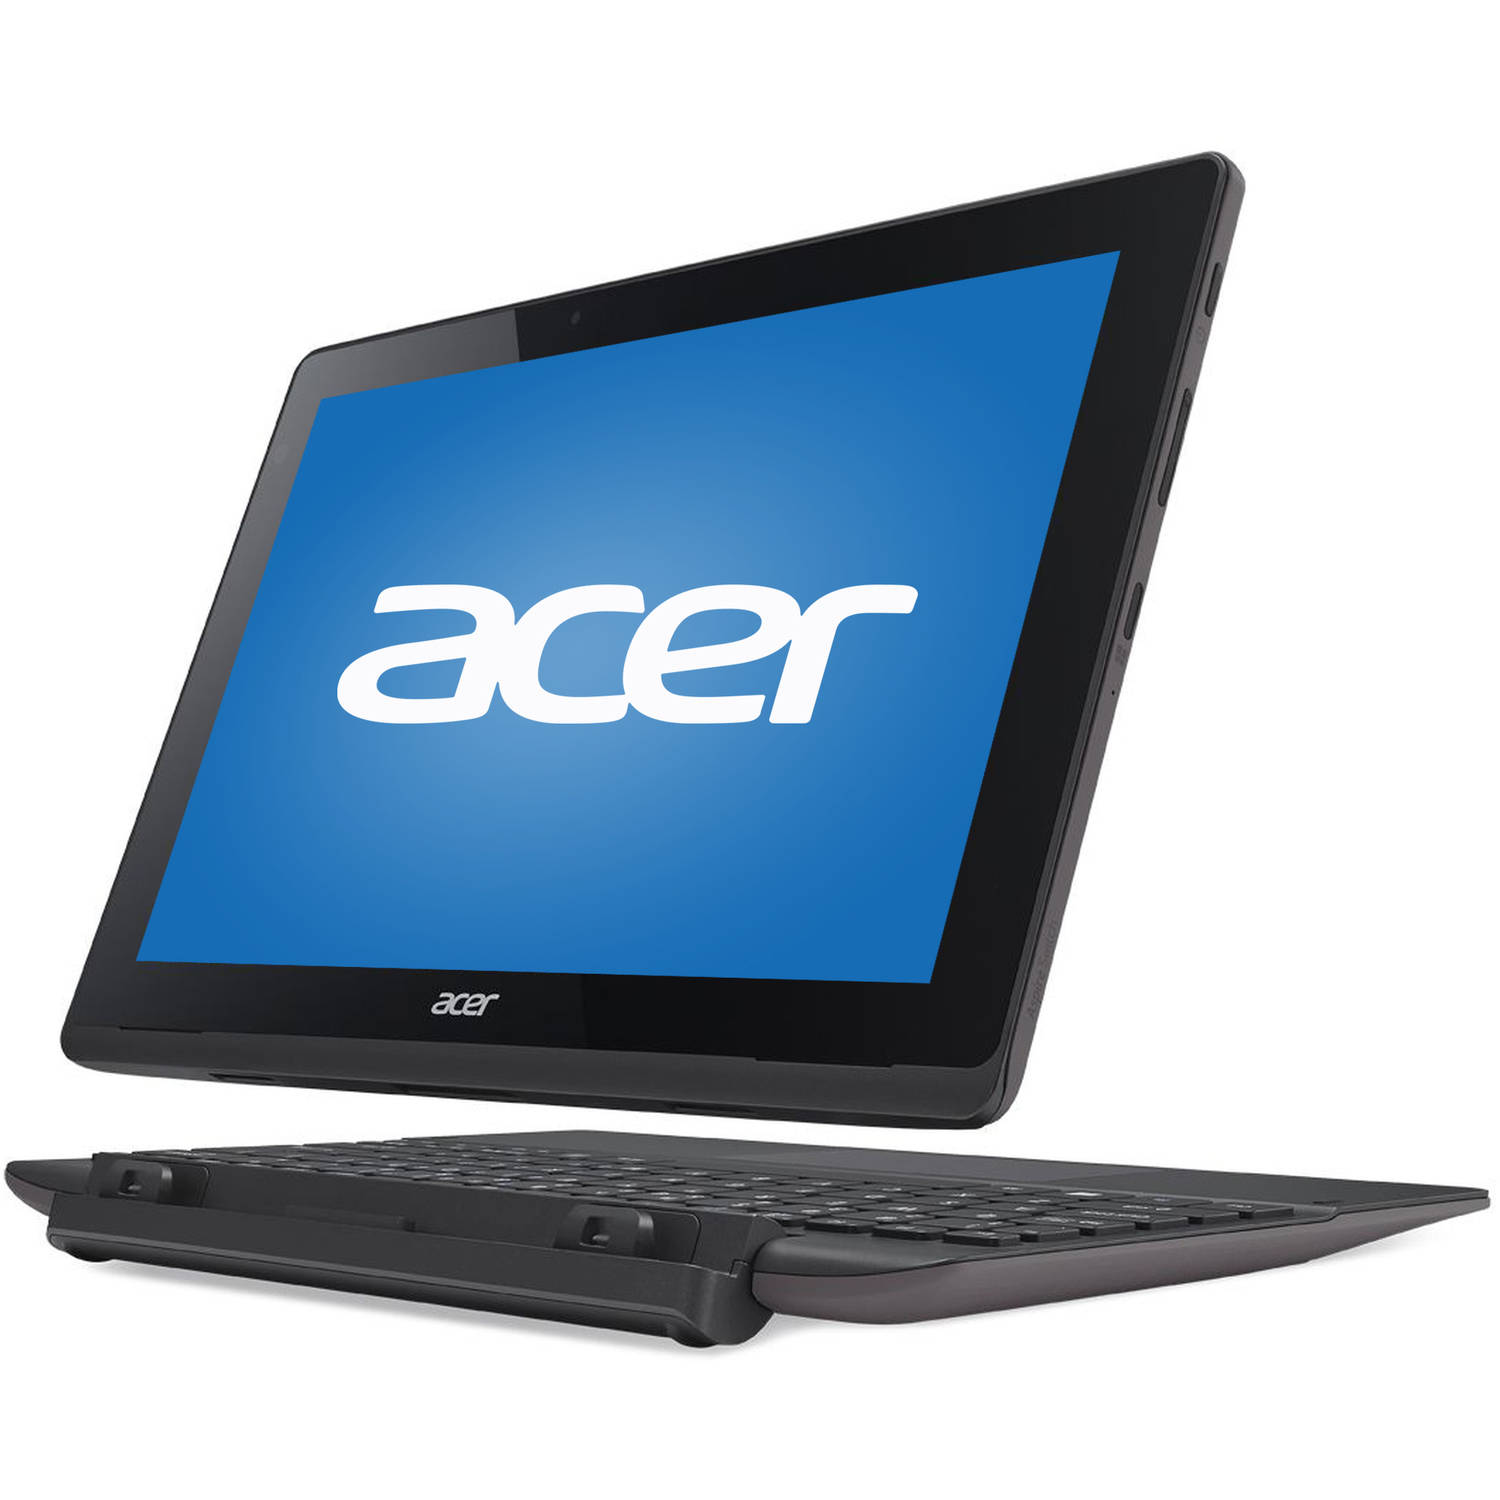 "Acer Black 10.1"" Aspire SW3-013-185Z Laptop PC with Intel Atom Z3735F Processor, 2GB Memory, touch screen, 32GB Flash and Windows 10"